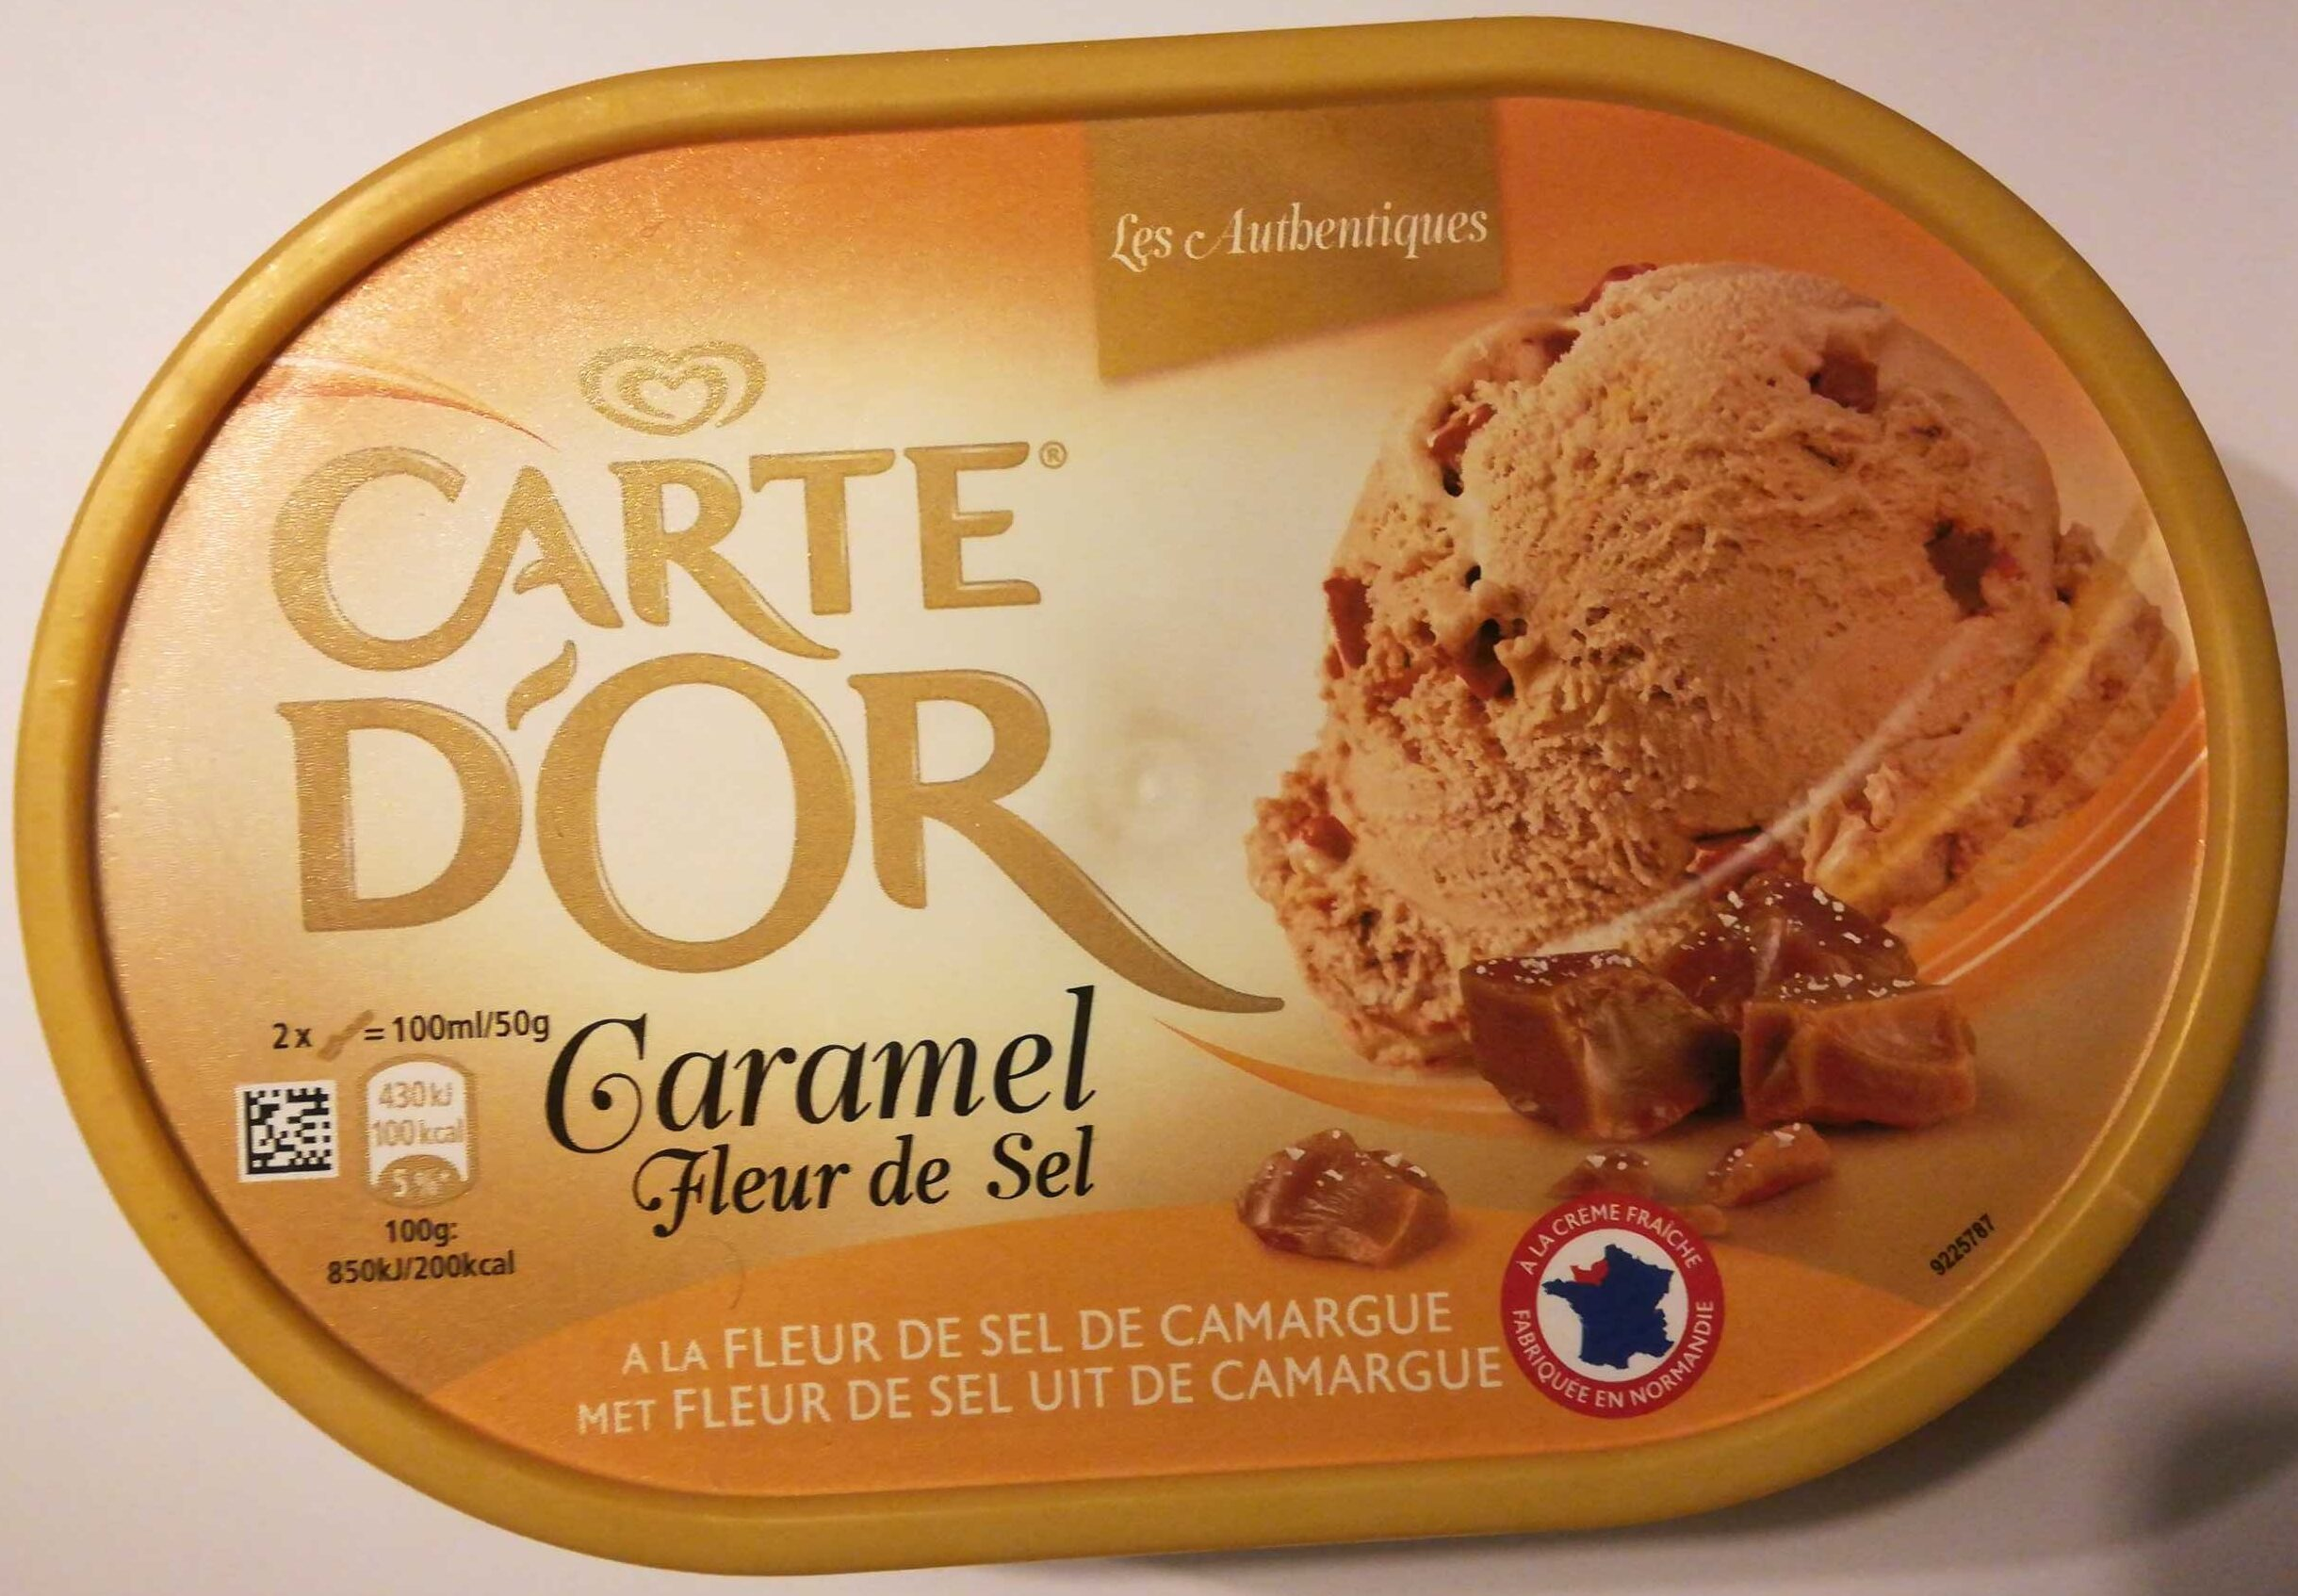 Carte D'or Les Authentiques Glace Caramel Fleur de Sel 1l - Product - nl